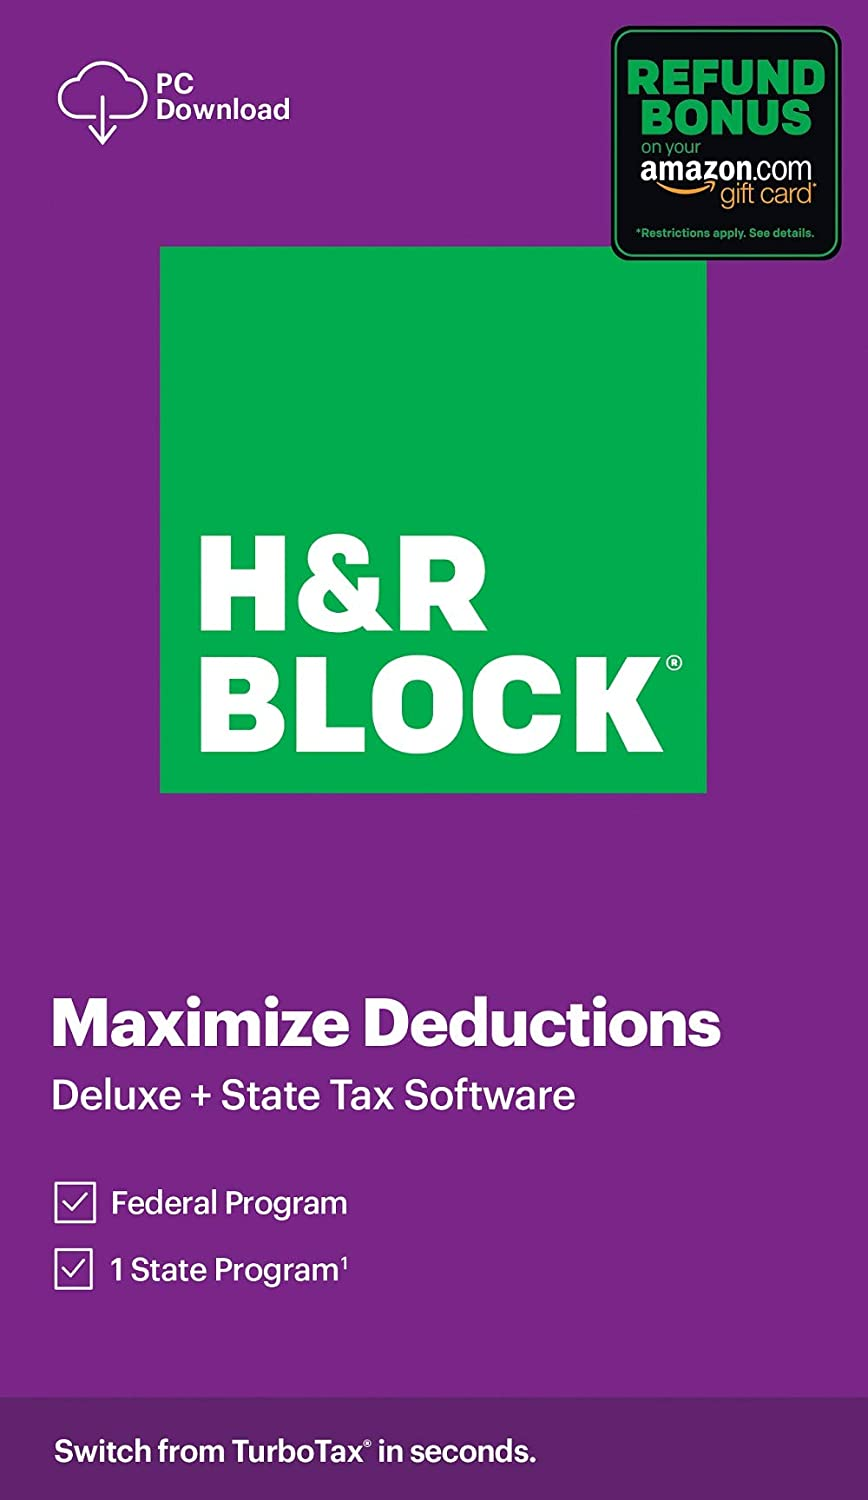 H&R Block Tax Software Deluxe + State 2020 with Refund Bonus Offer (Amazon Exclusive) [PC Download]